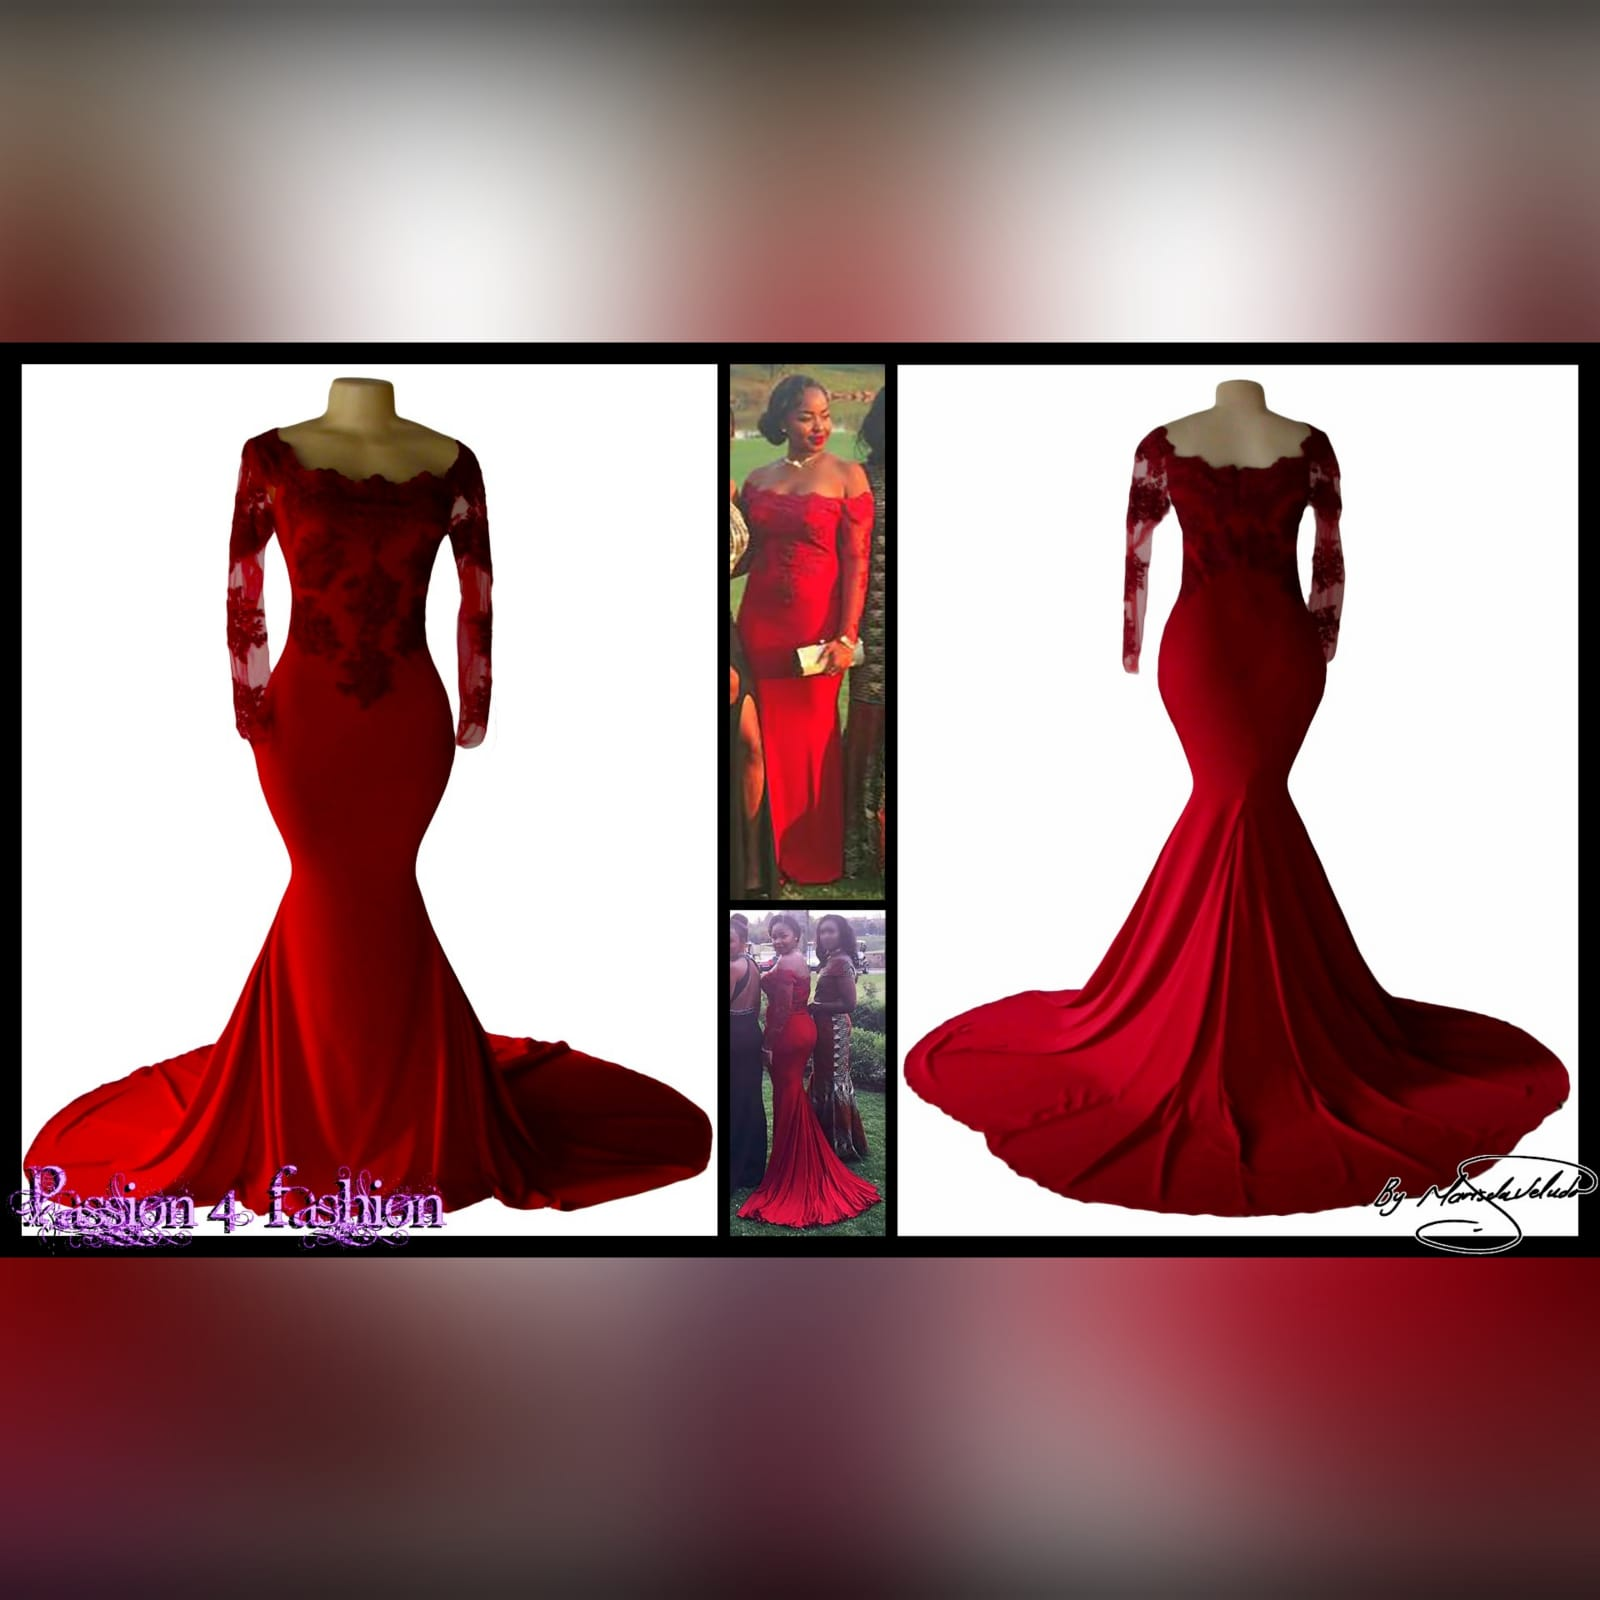 Off shoulder deep red soft mermaid prom dress 5 off shoulder deep red soft mermaid prom dress with an illusion long lace sleeves. Bodice detailed with lace and beads. With a train